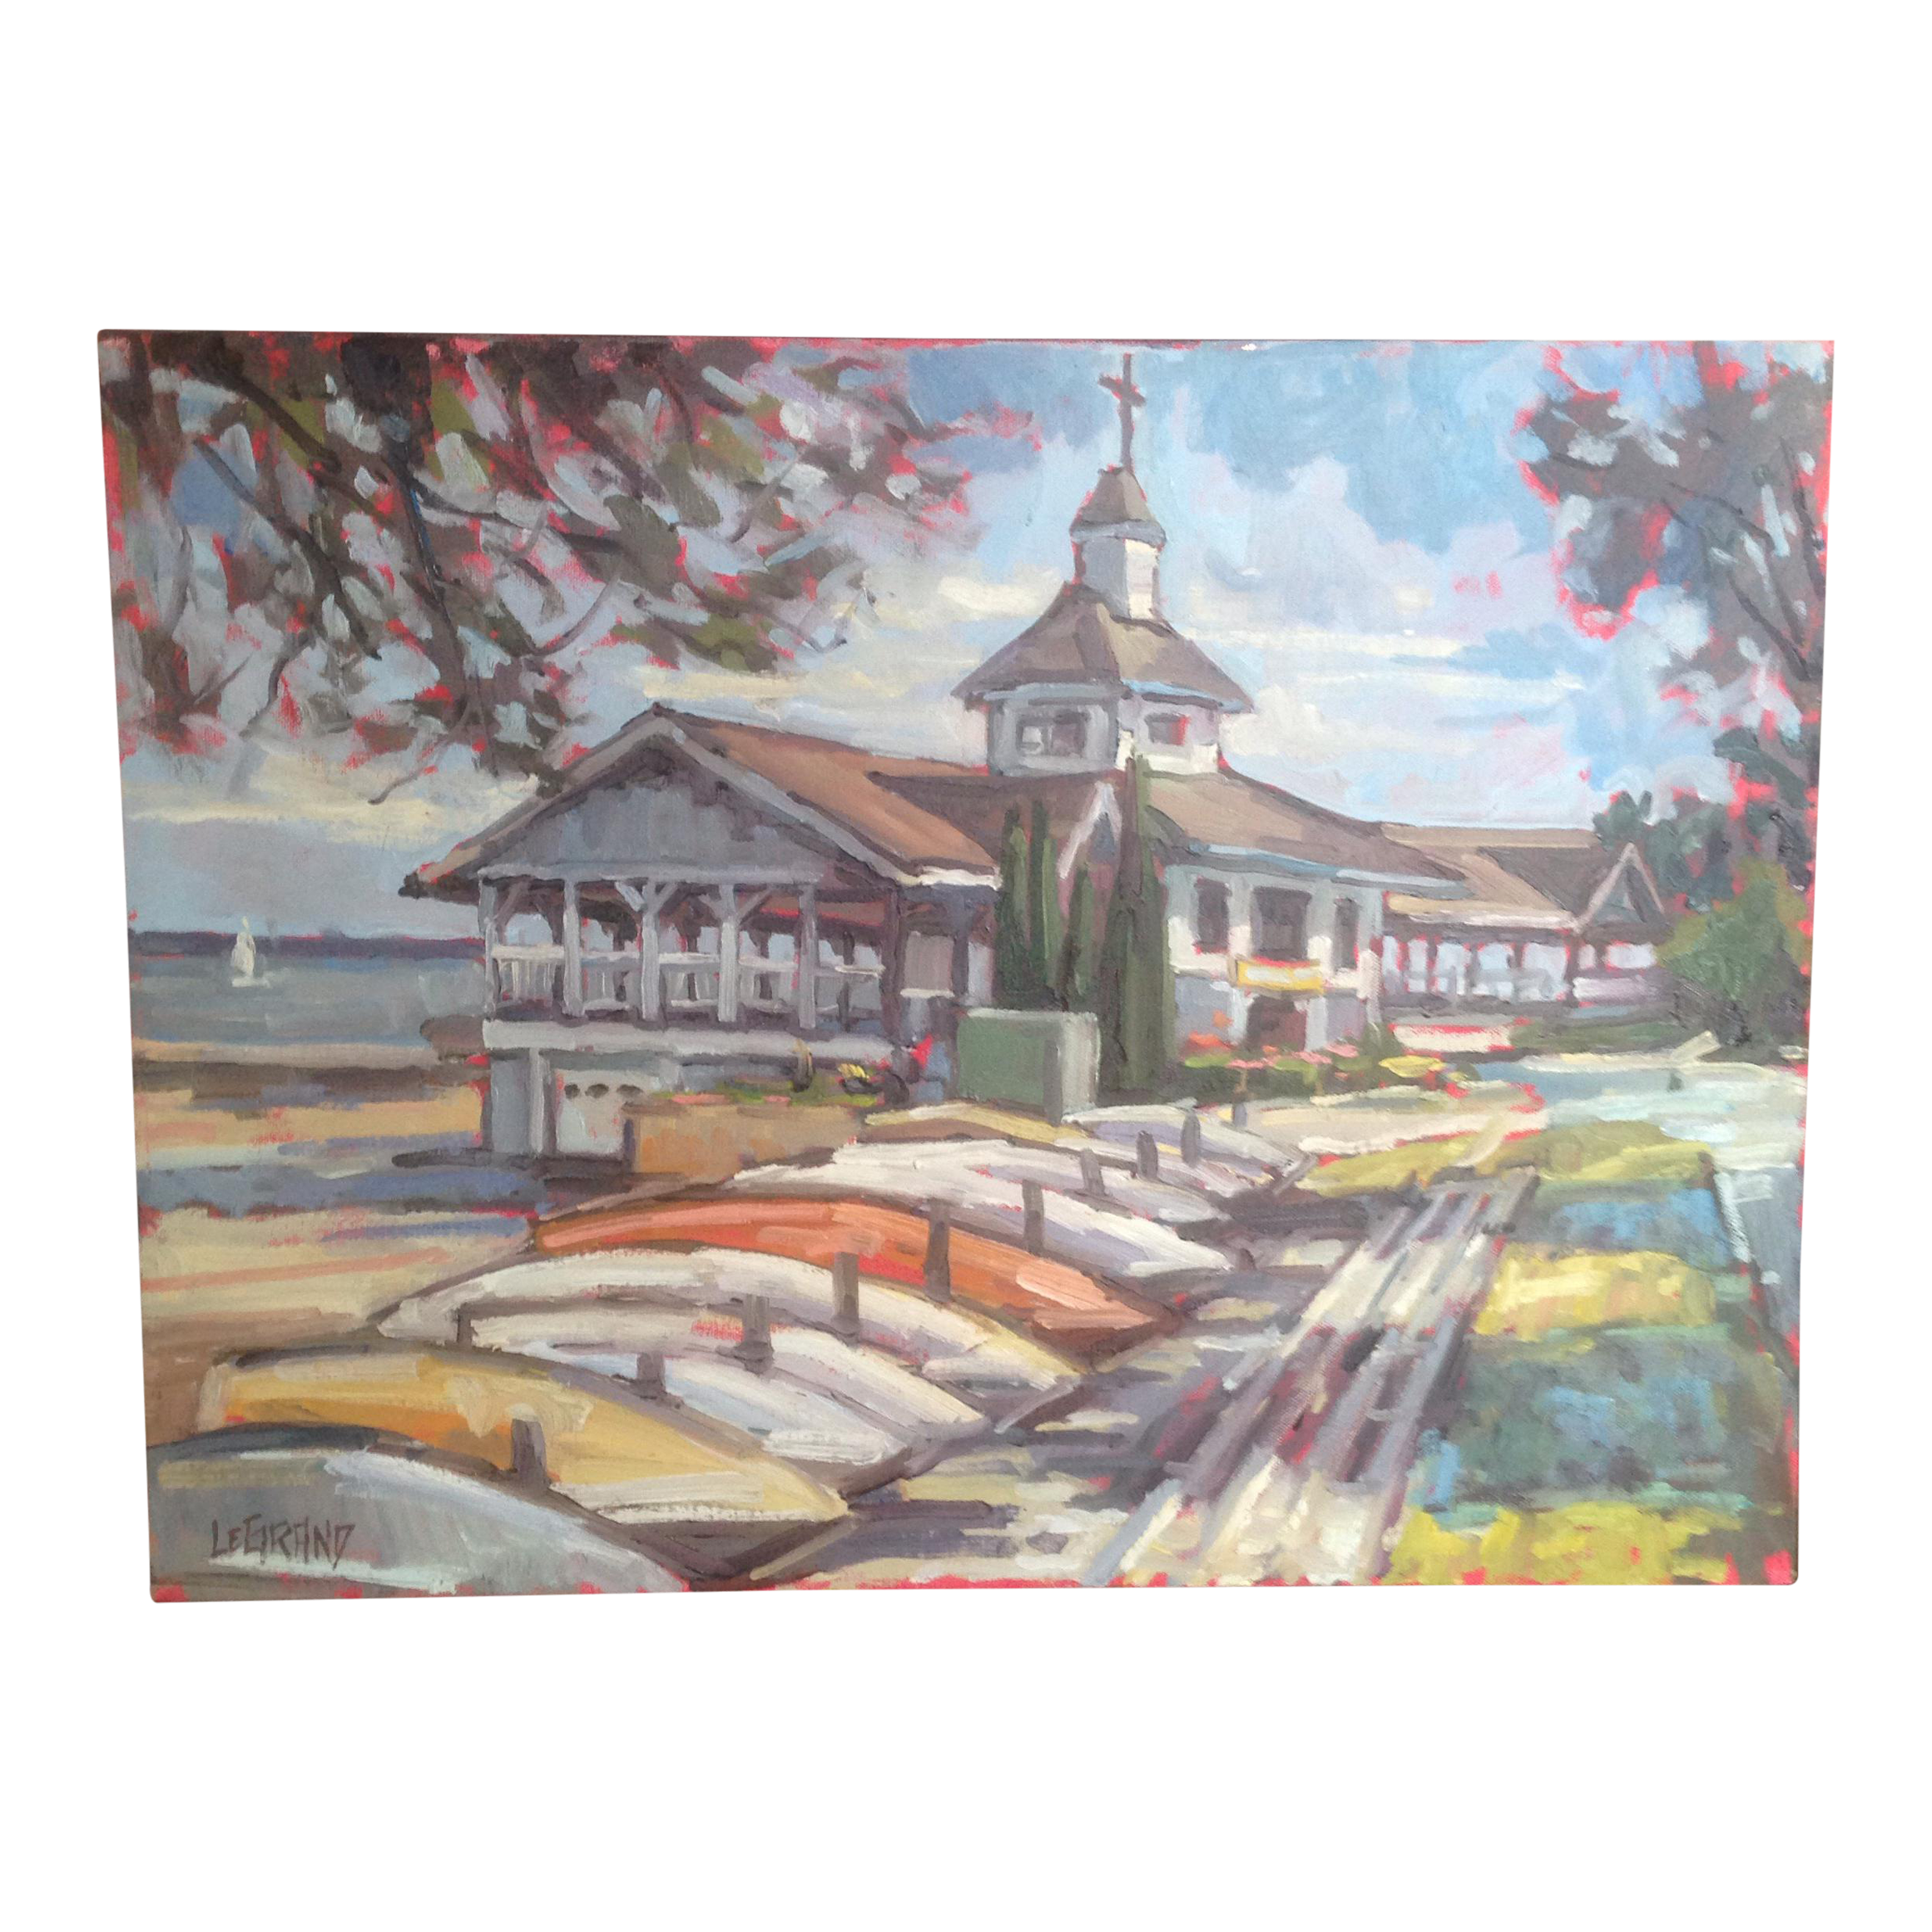 Gazebo drawing painting. Bright multicolored lakeside pavilion